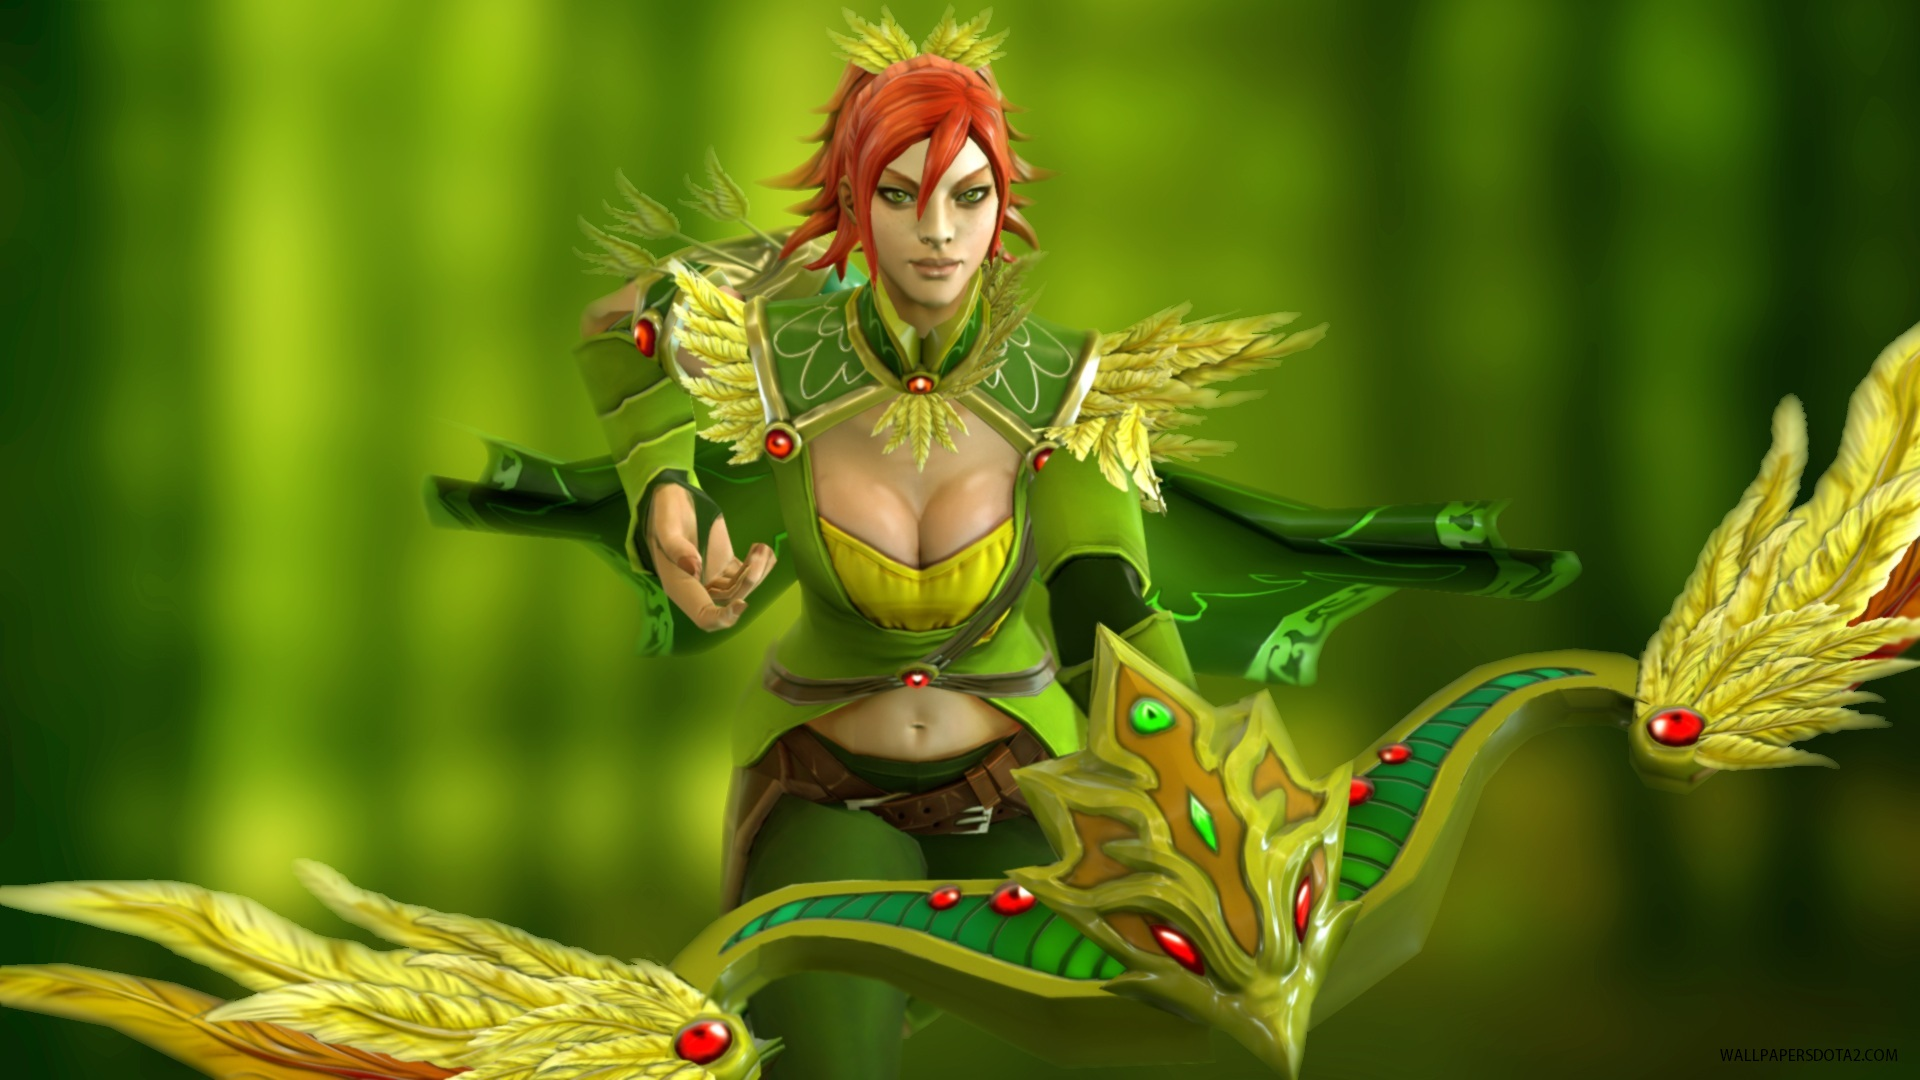 Windranger computer wallpapers Dota 2